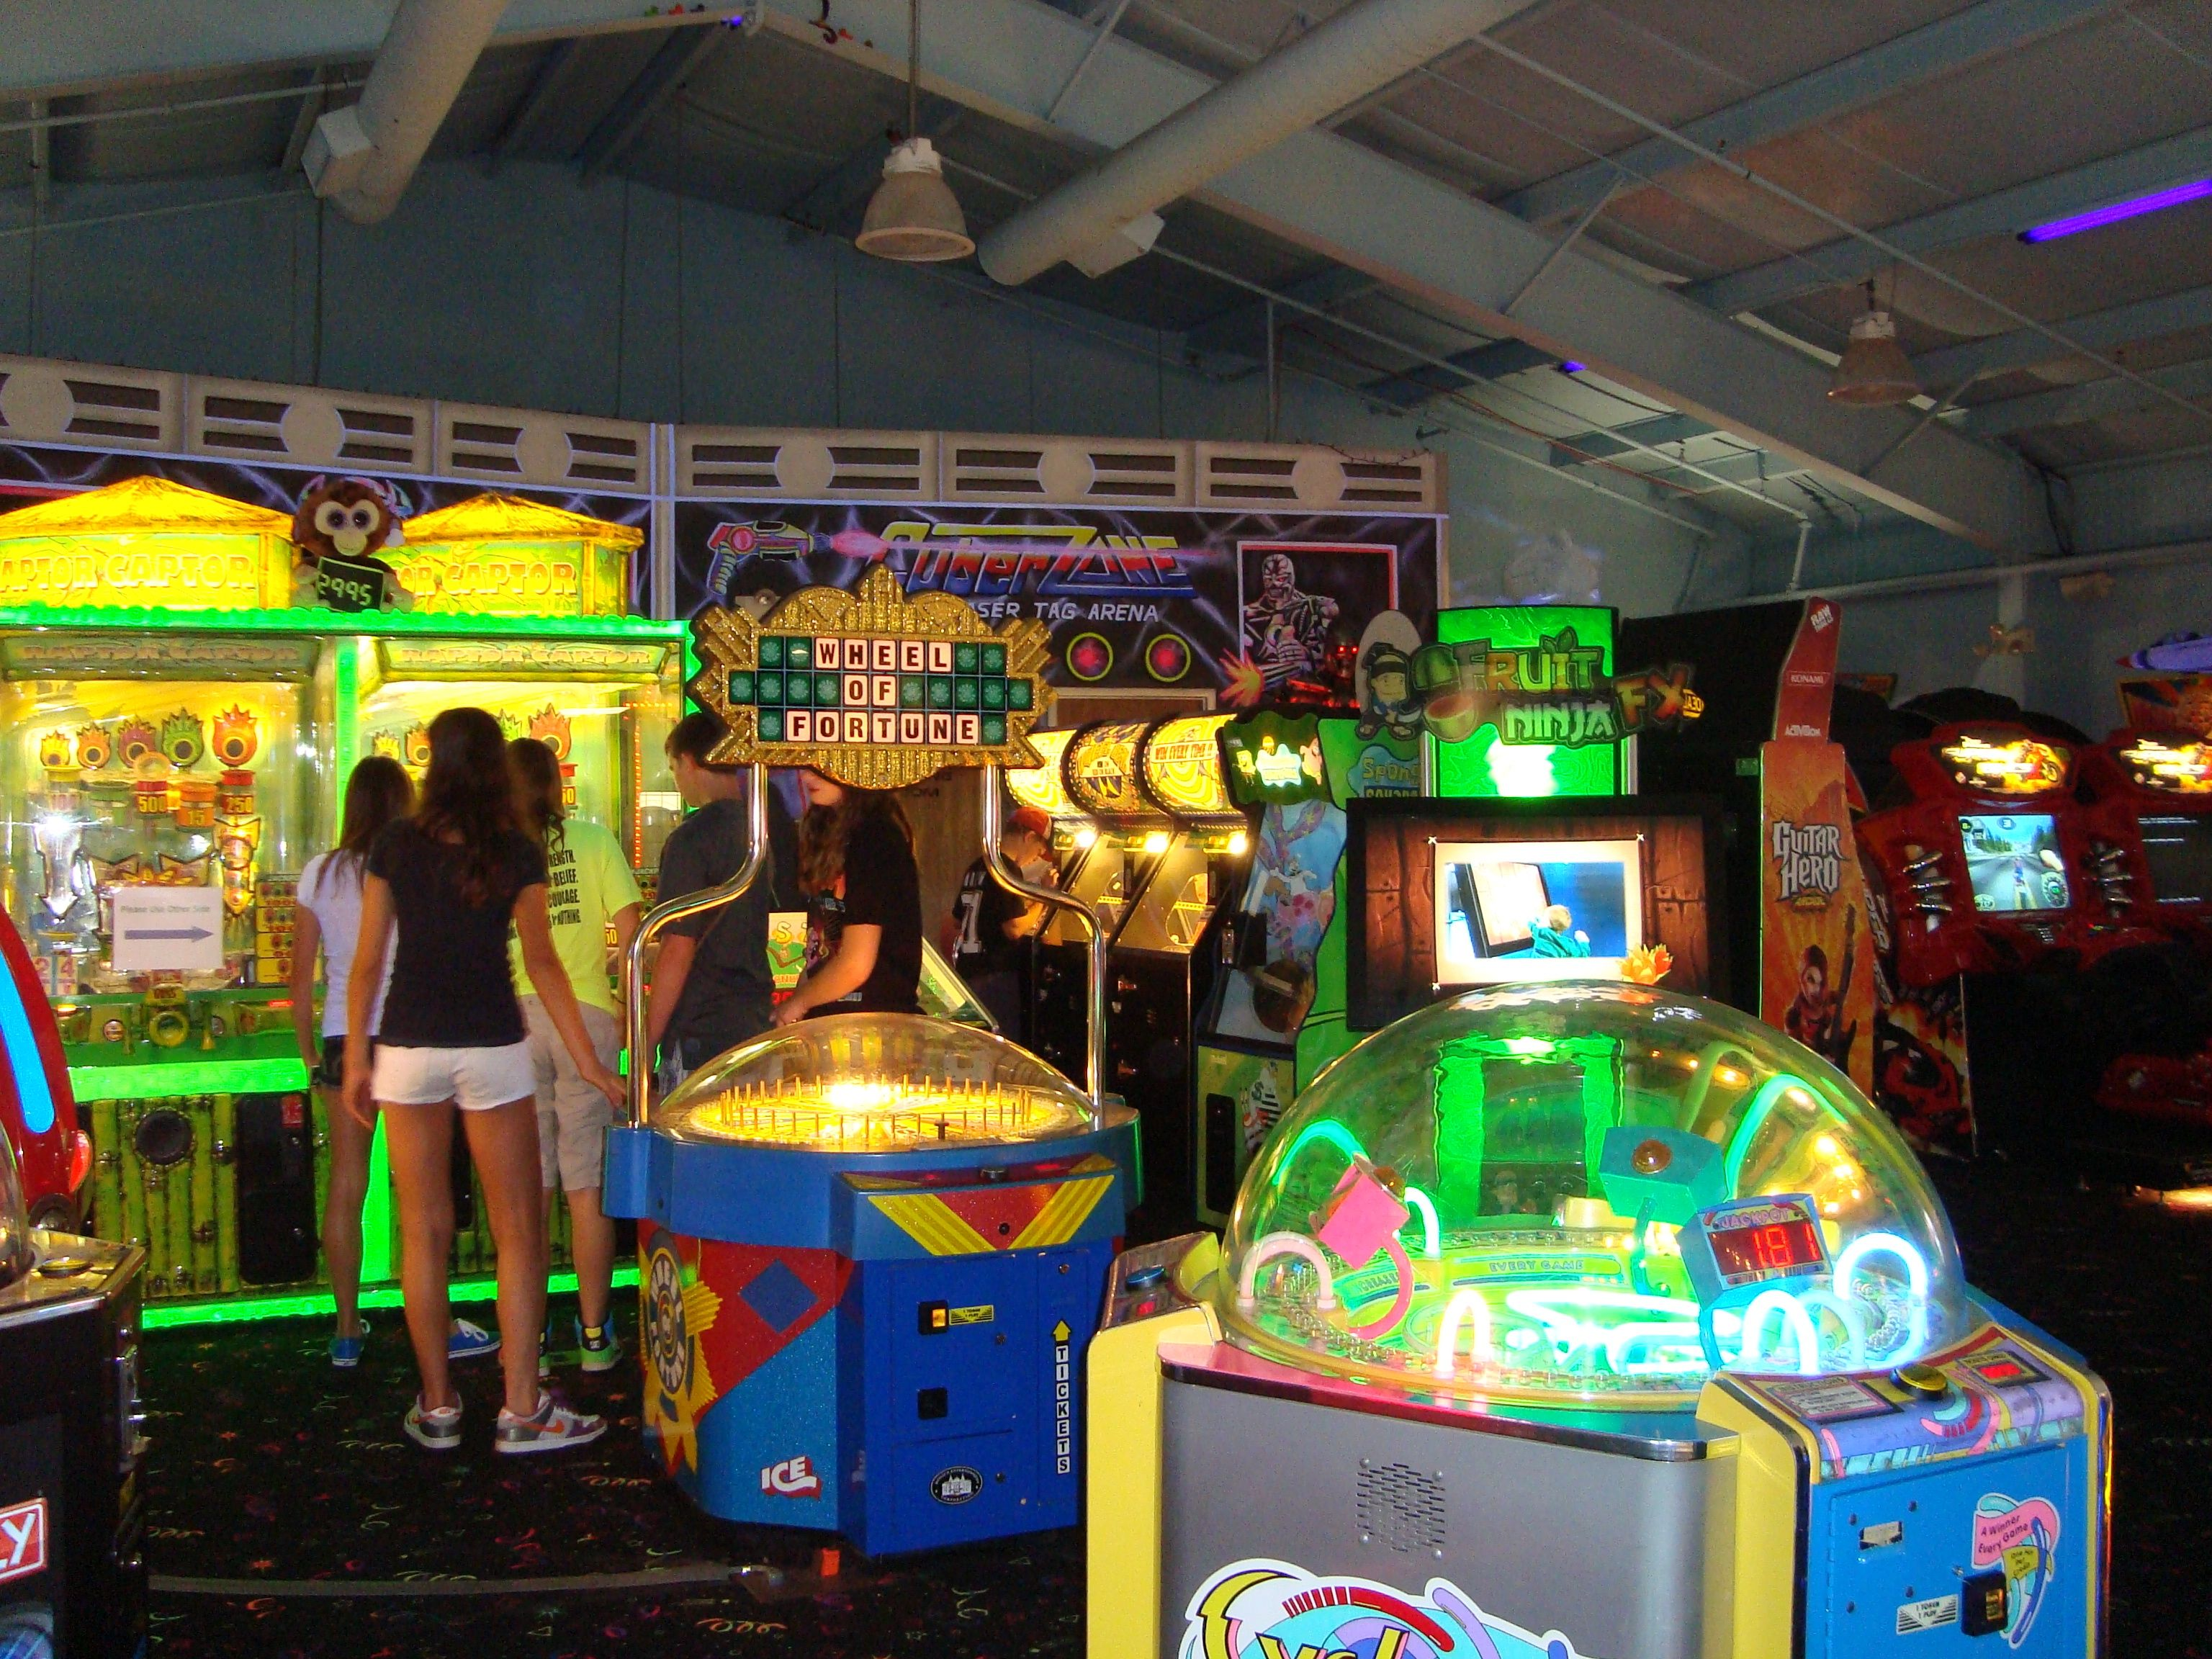 Over 70 arcade games to have fun with! Arcade room